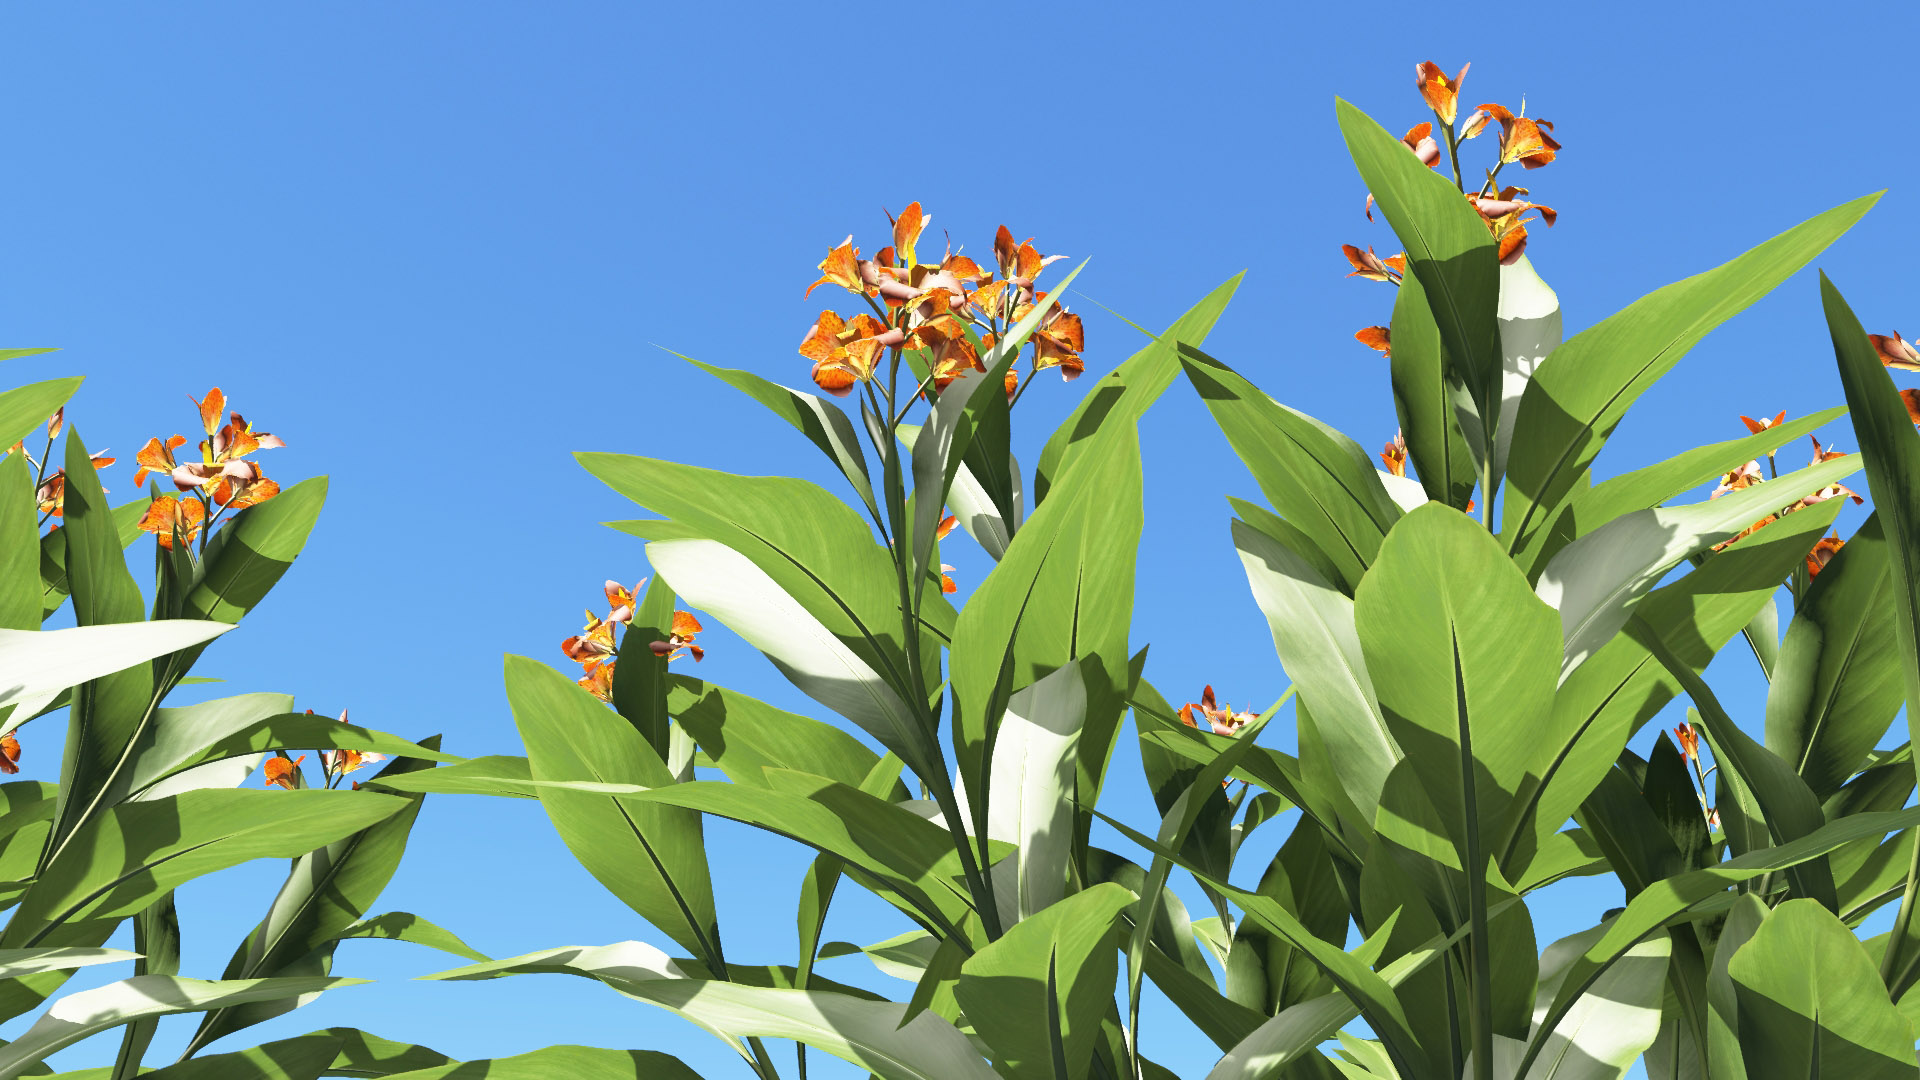 3D model of the Canna lily Canna x generalis orange close-up